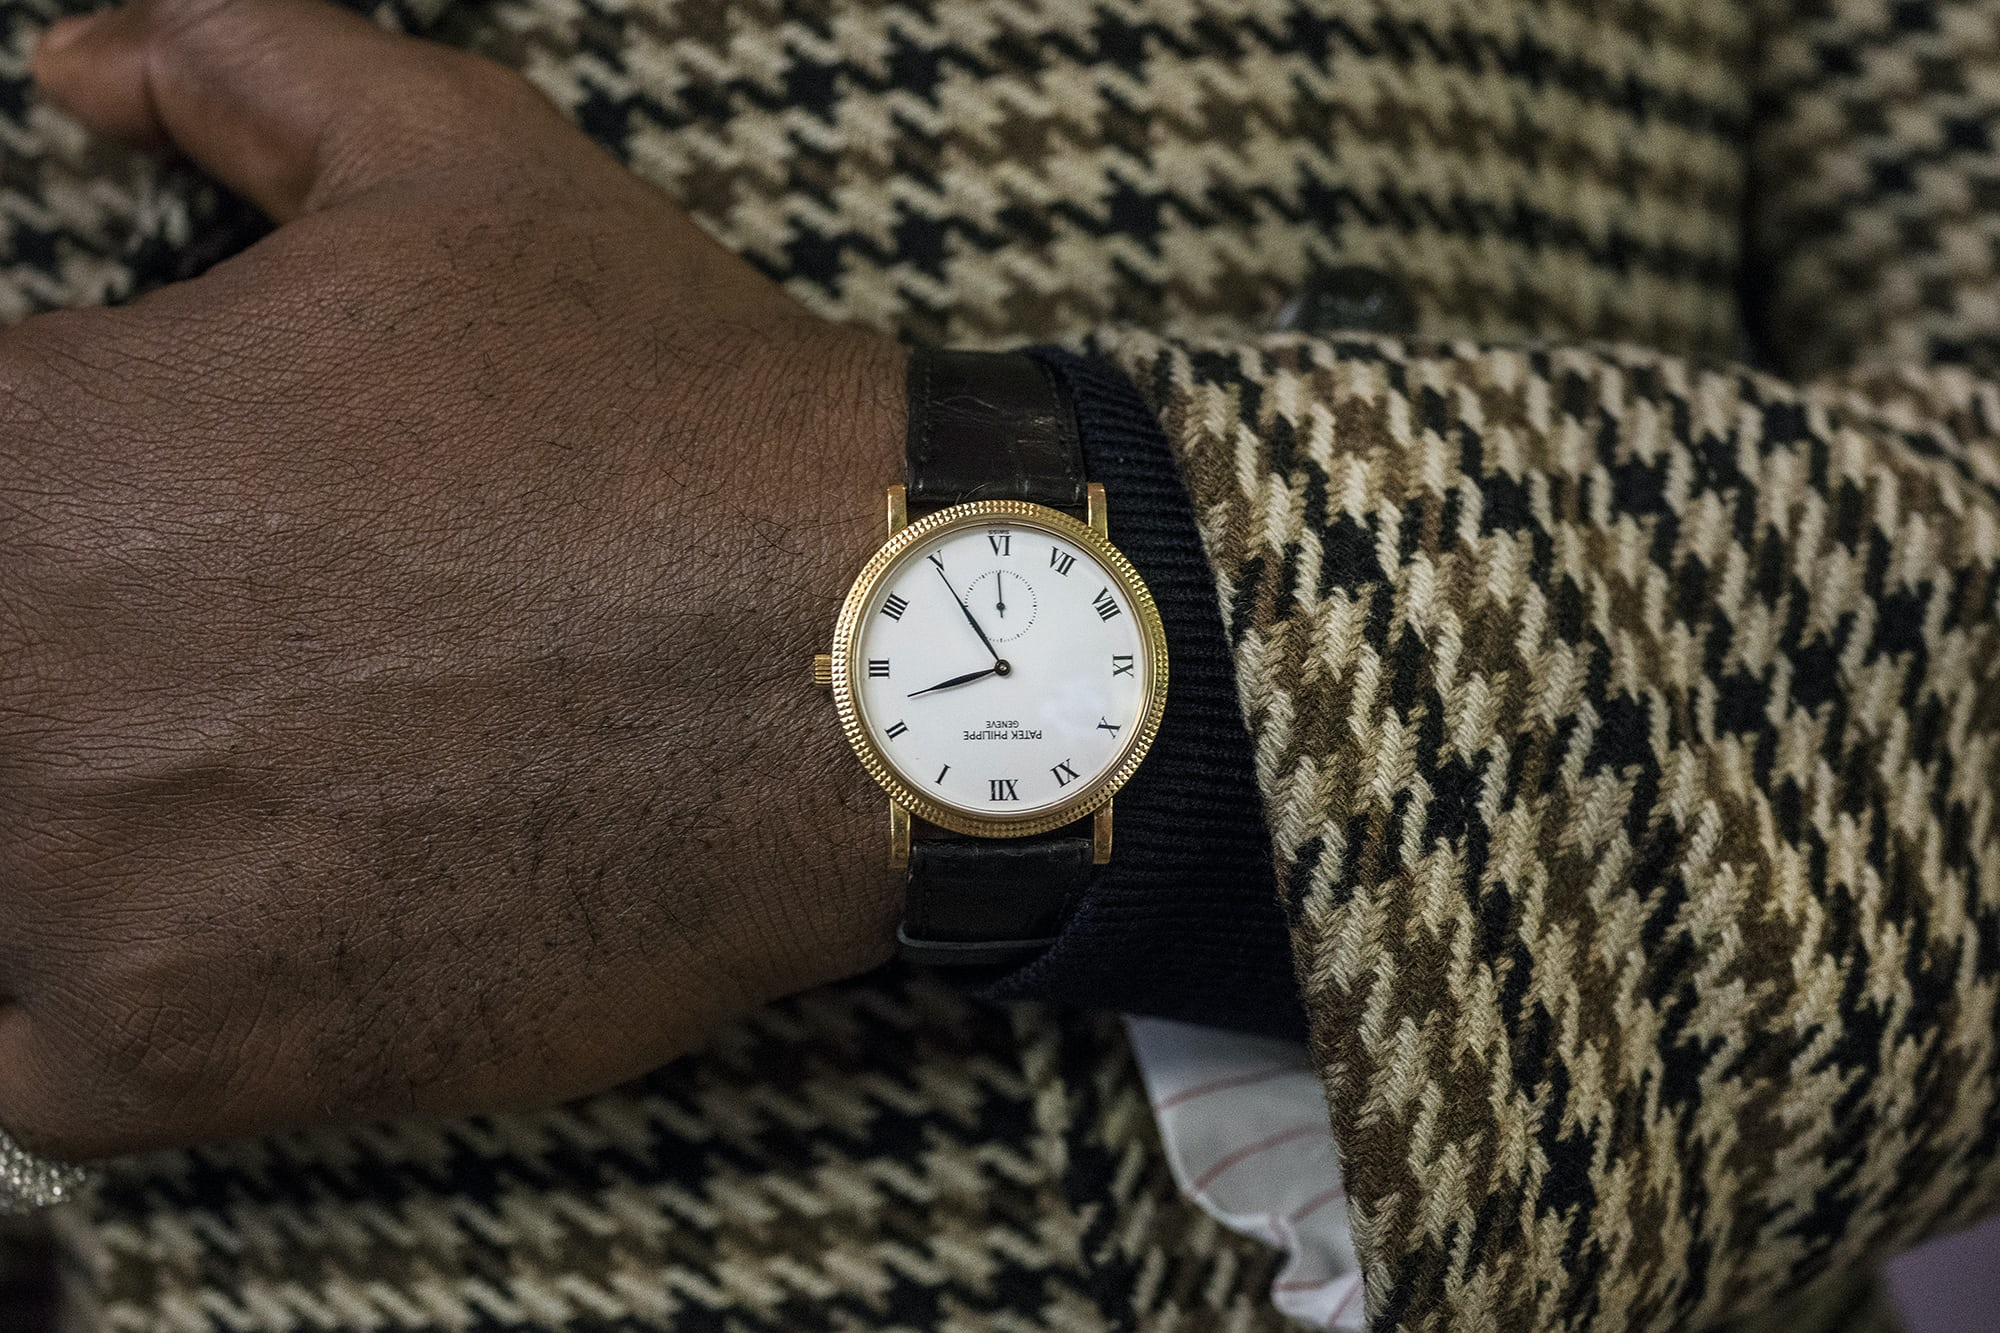 Photo Report: The Fashion And Watches Of Baselworld 2018 Photo Report: The Fashion And Watches Of Baselworld 2018 DSC00627 copy